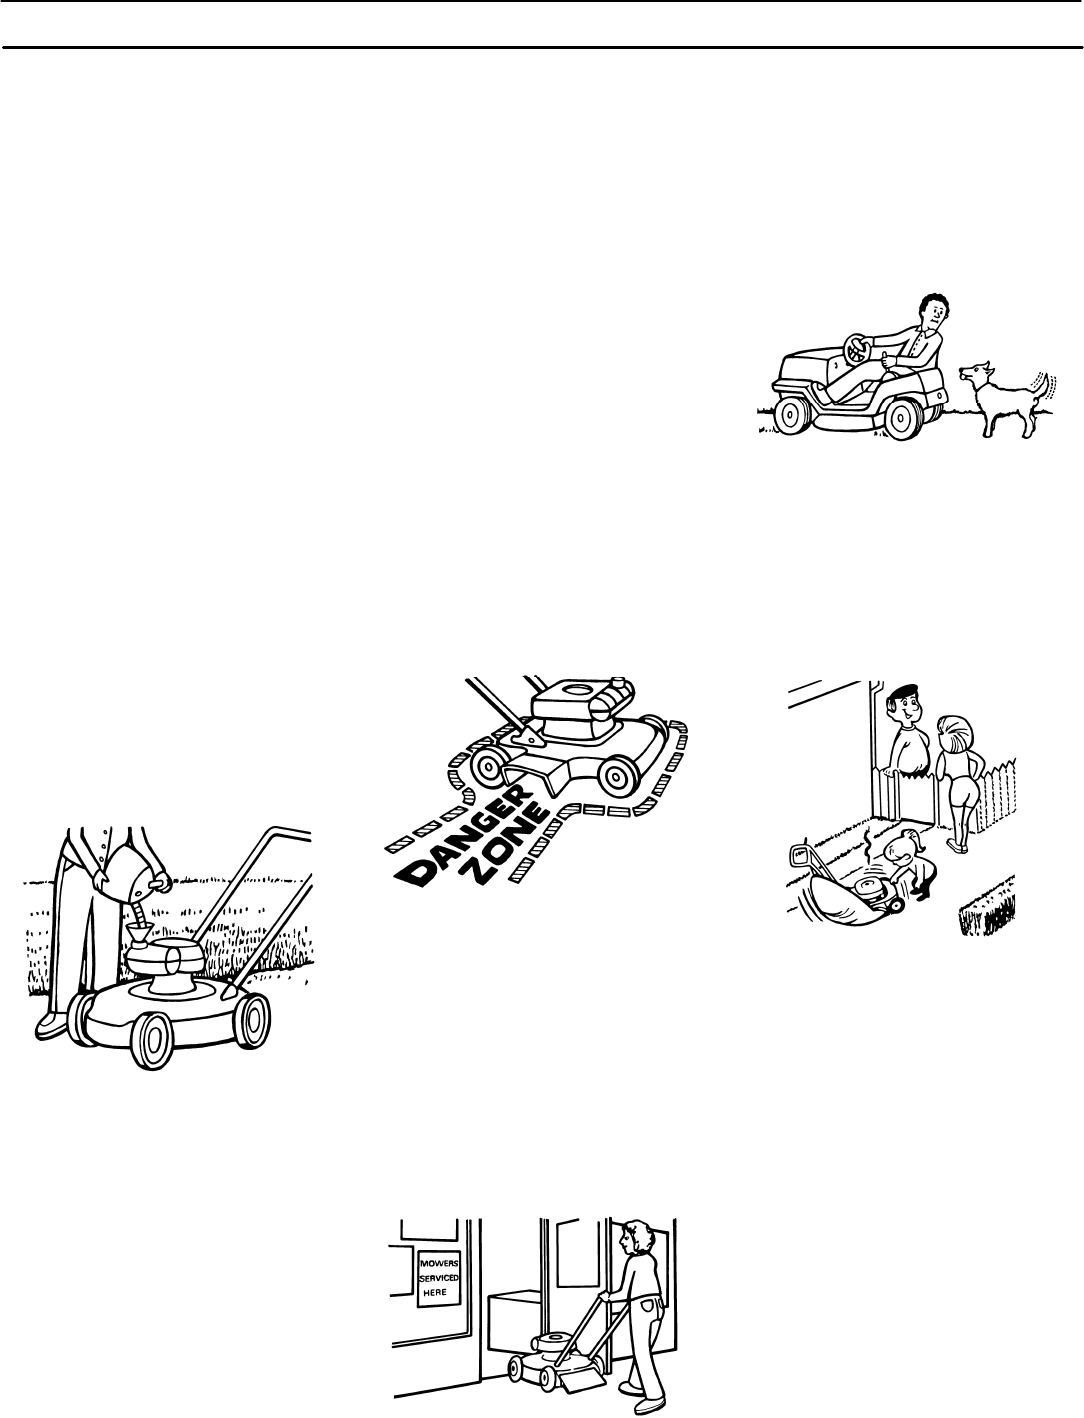 Page 6 of Murray Lawn Mower 309001x18A User Guide